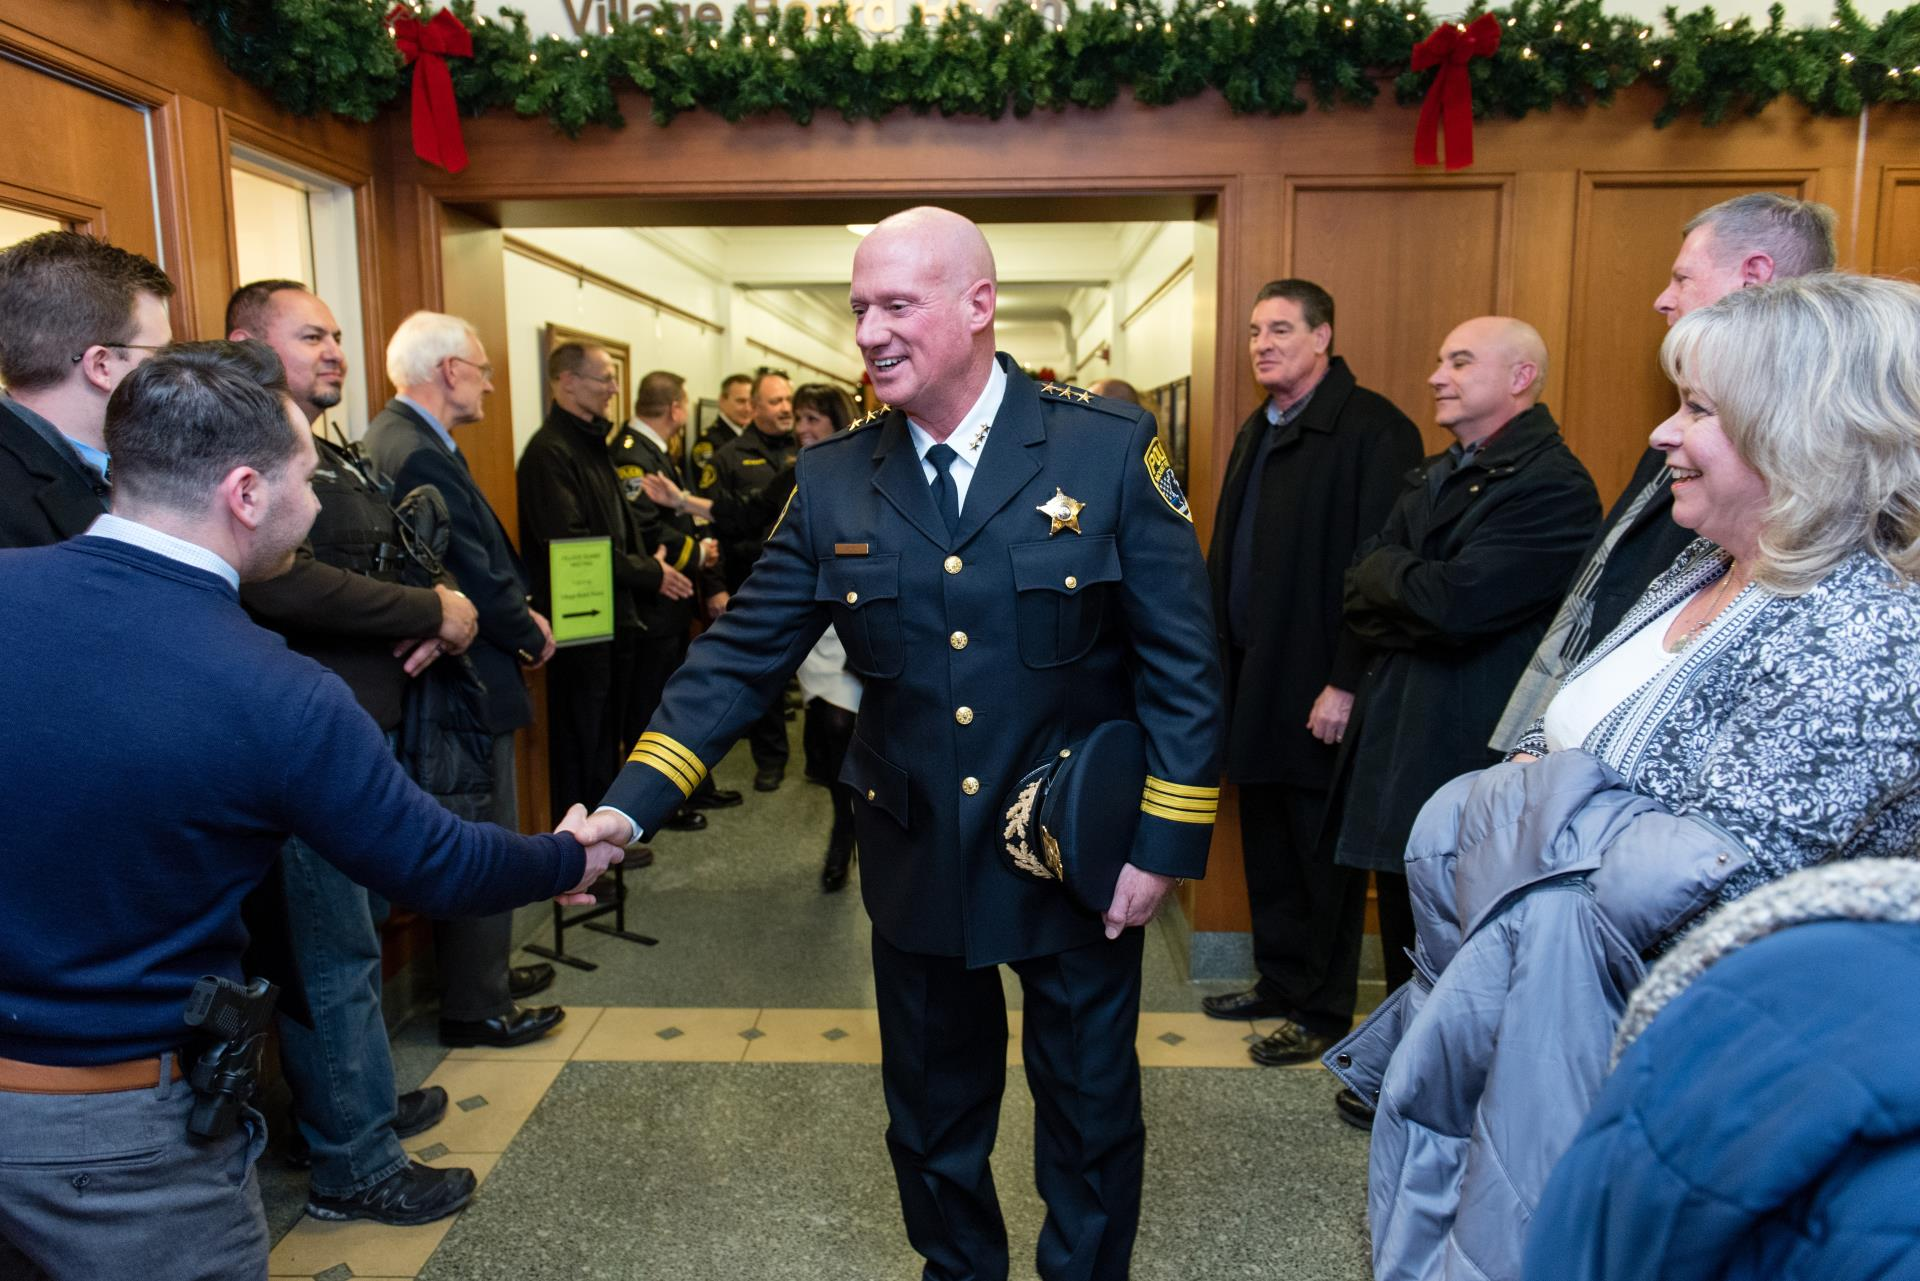 Chief Koziol Swearing-In Ceremony Final-4288